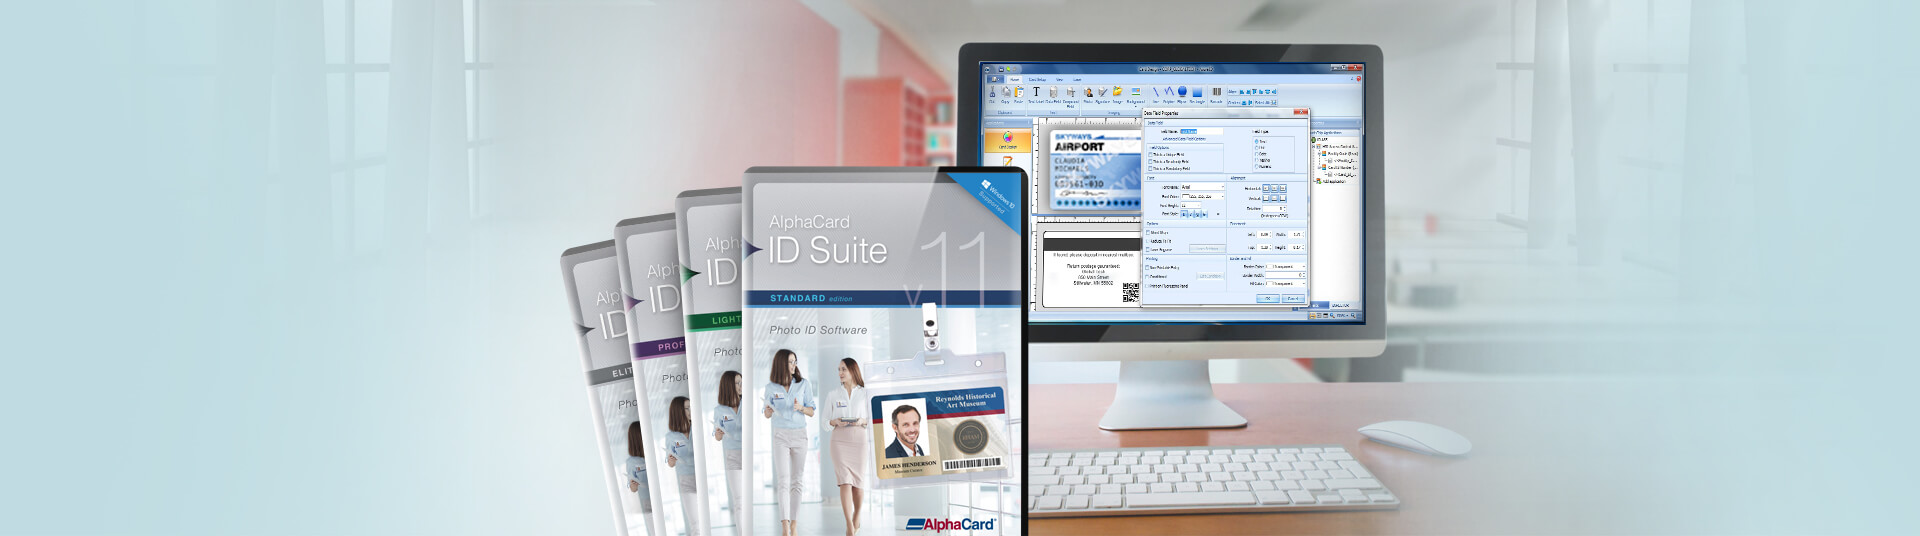 Id Card Alphacard Software Alphacard Card Software Id Id